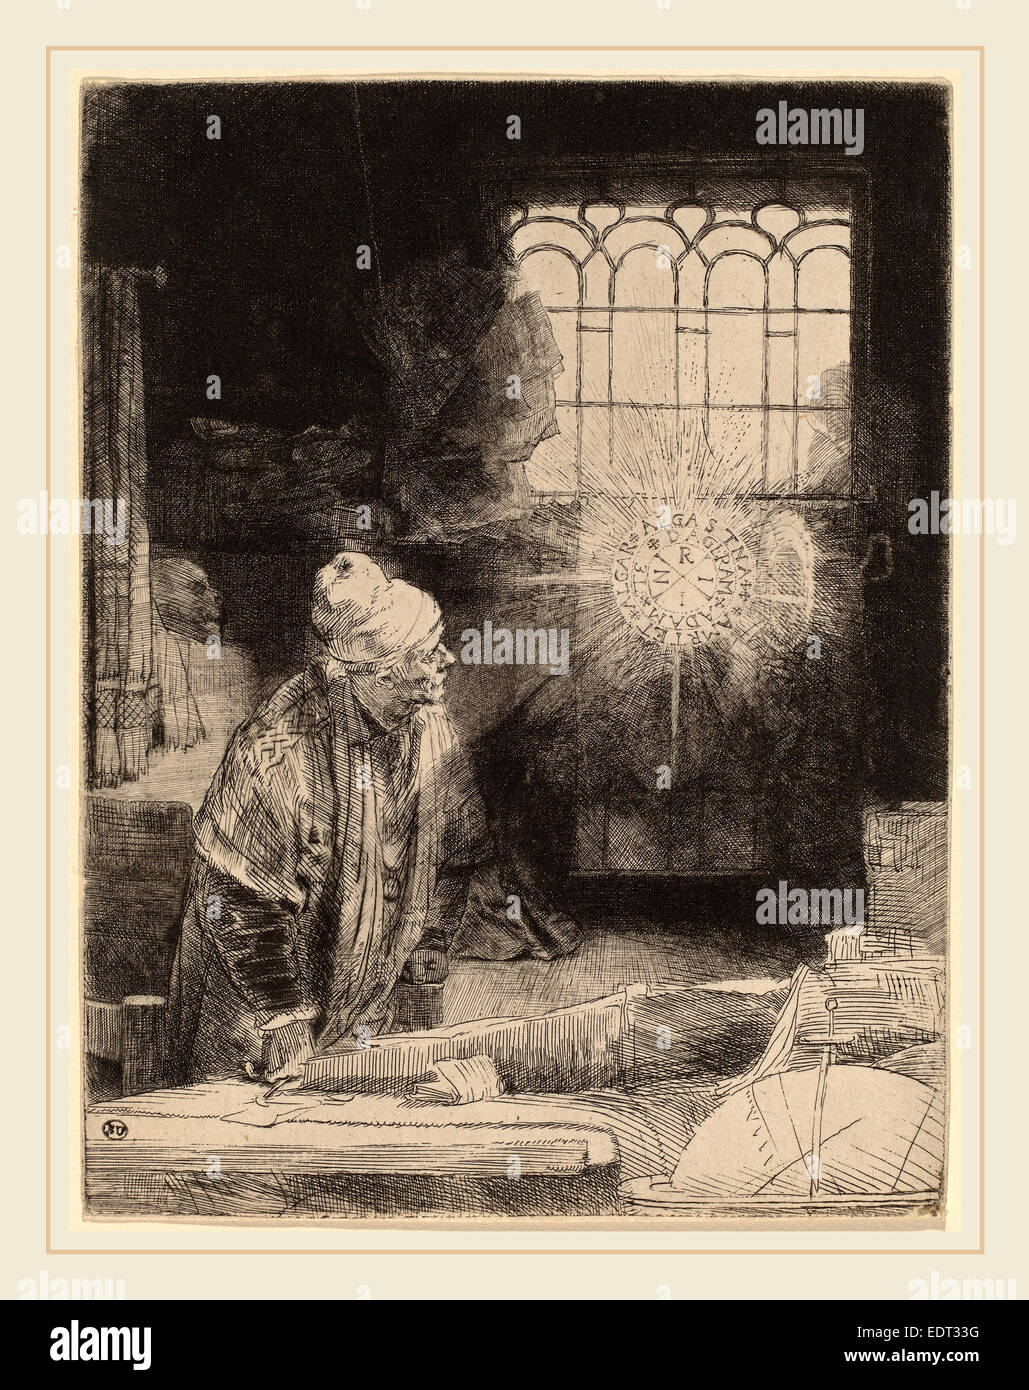 Rembrandt van Rijn (Dutch, 1606-1669), Faust, c. 1652, etching, drypoint and burin on a heavy white paper Stock Photo